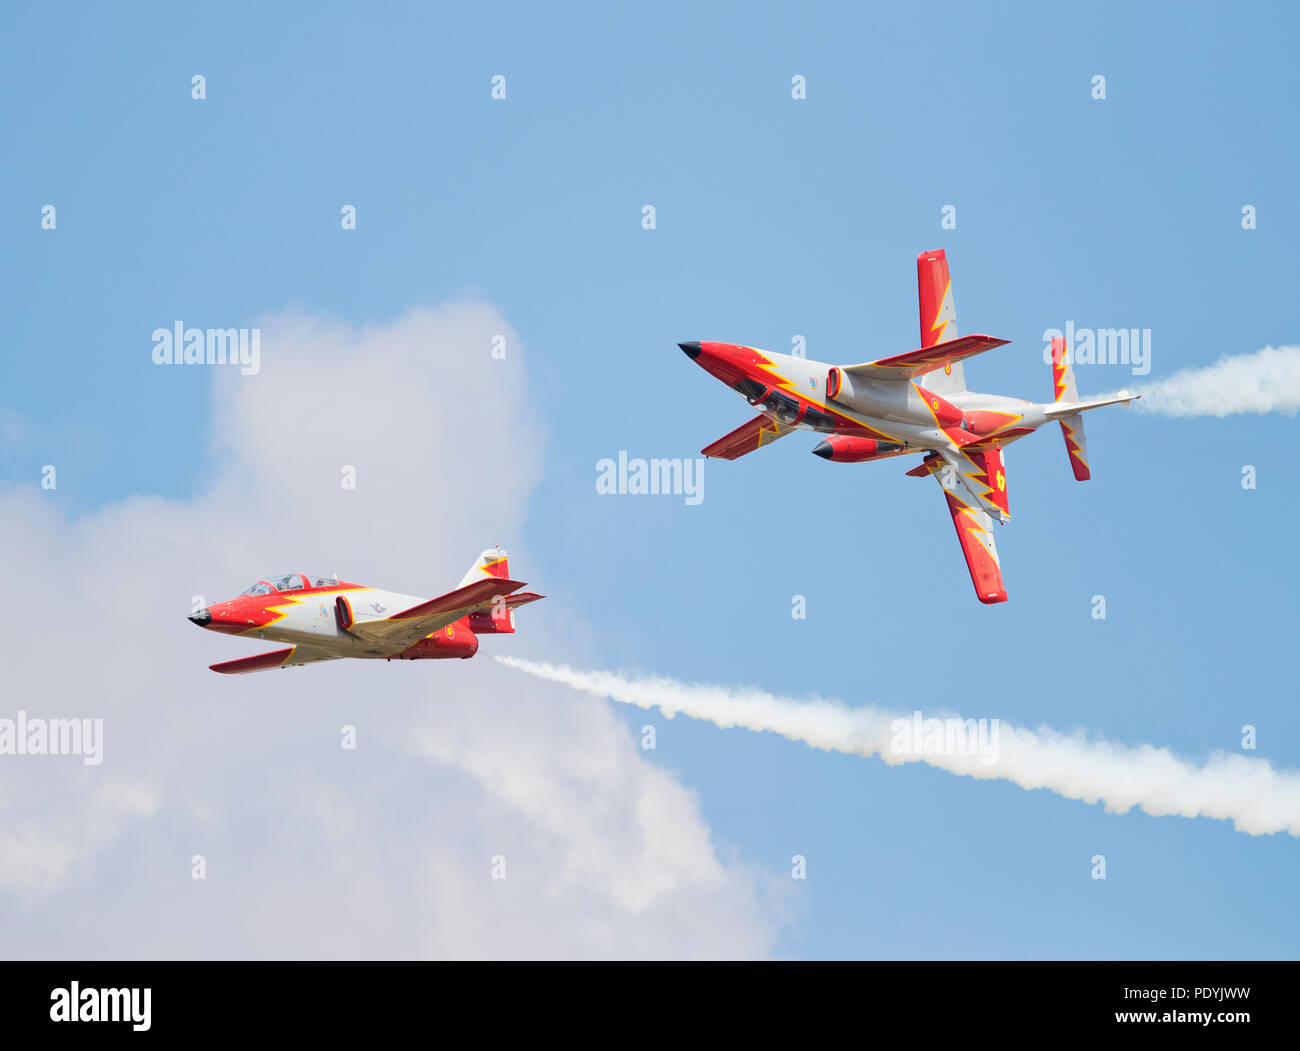 RAF RIAT 2018, the Spanish Air Force Patrulla Aguila displaying at the air show Fairford,Gloucestershire,U.K. - Stock Image